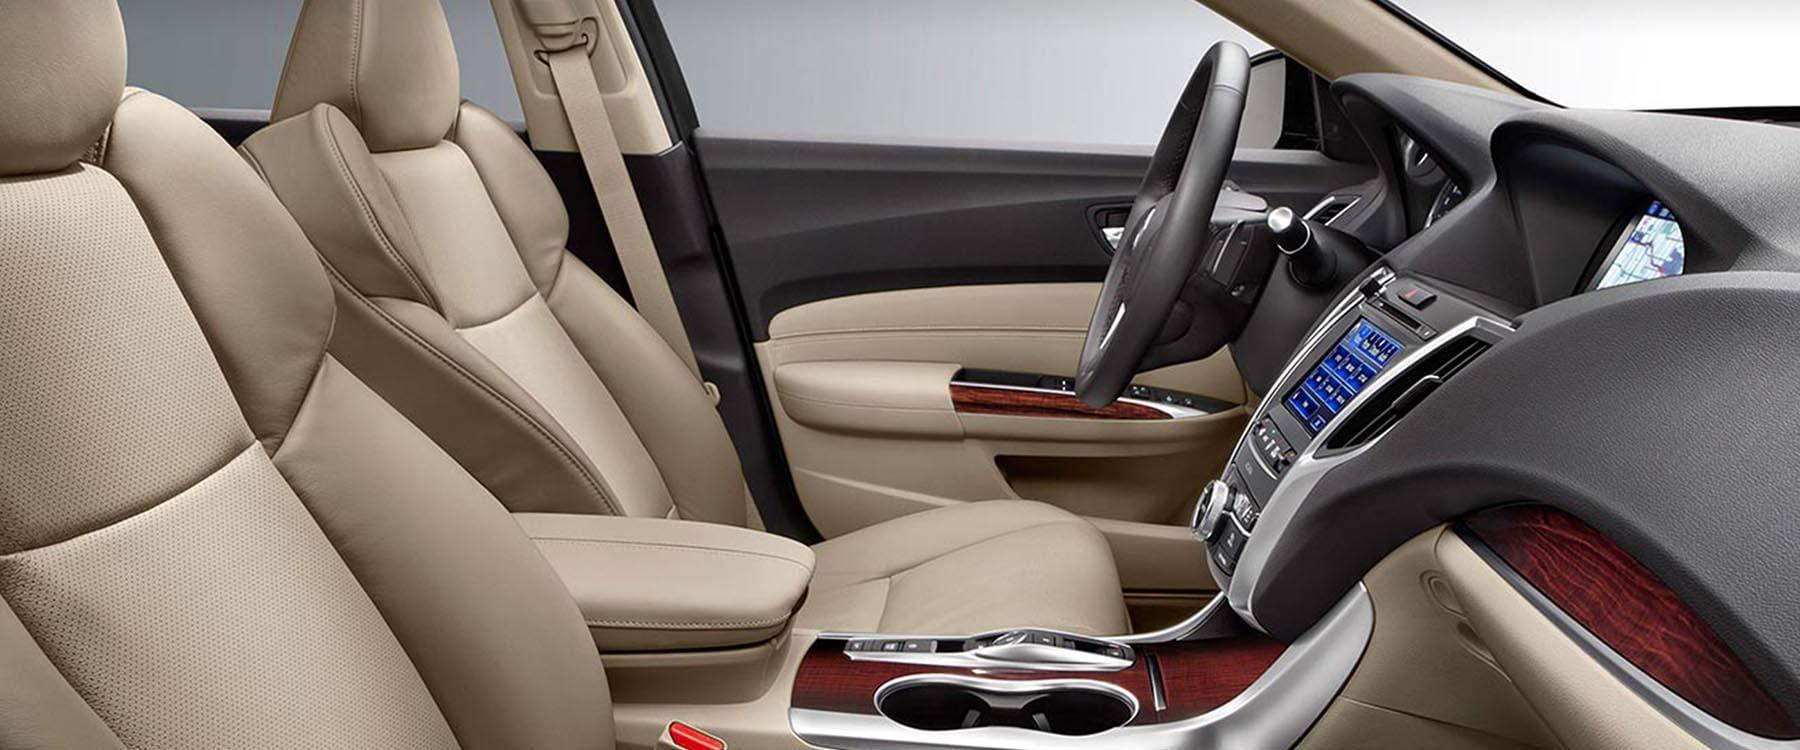 2017 Acura Tlx Interior Features Impress Chicago Drivers